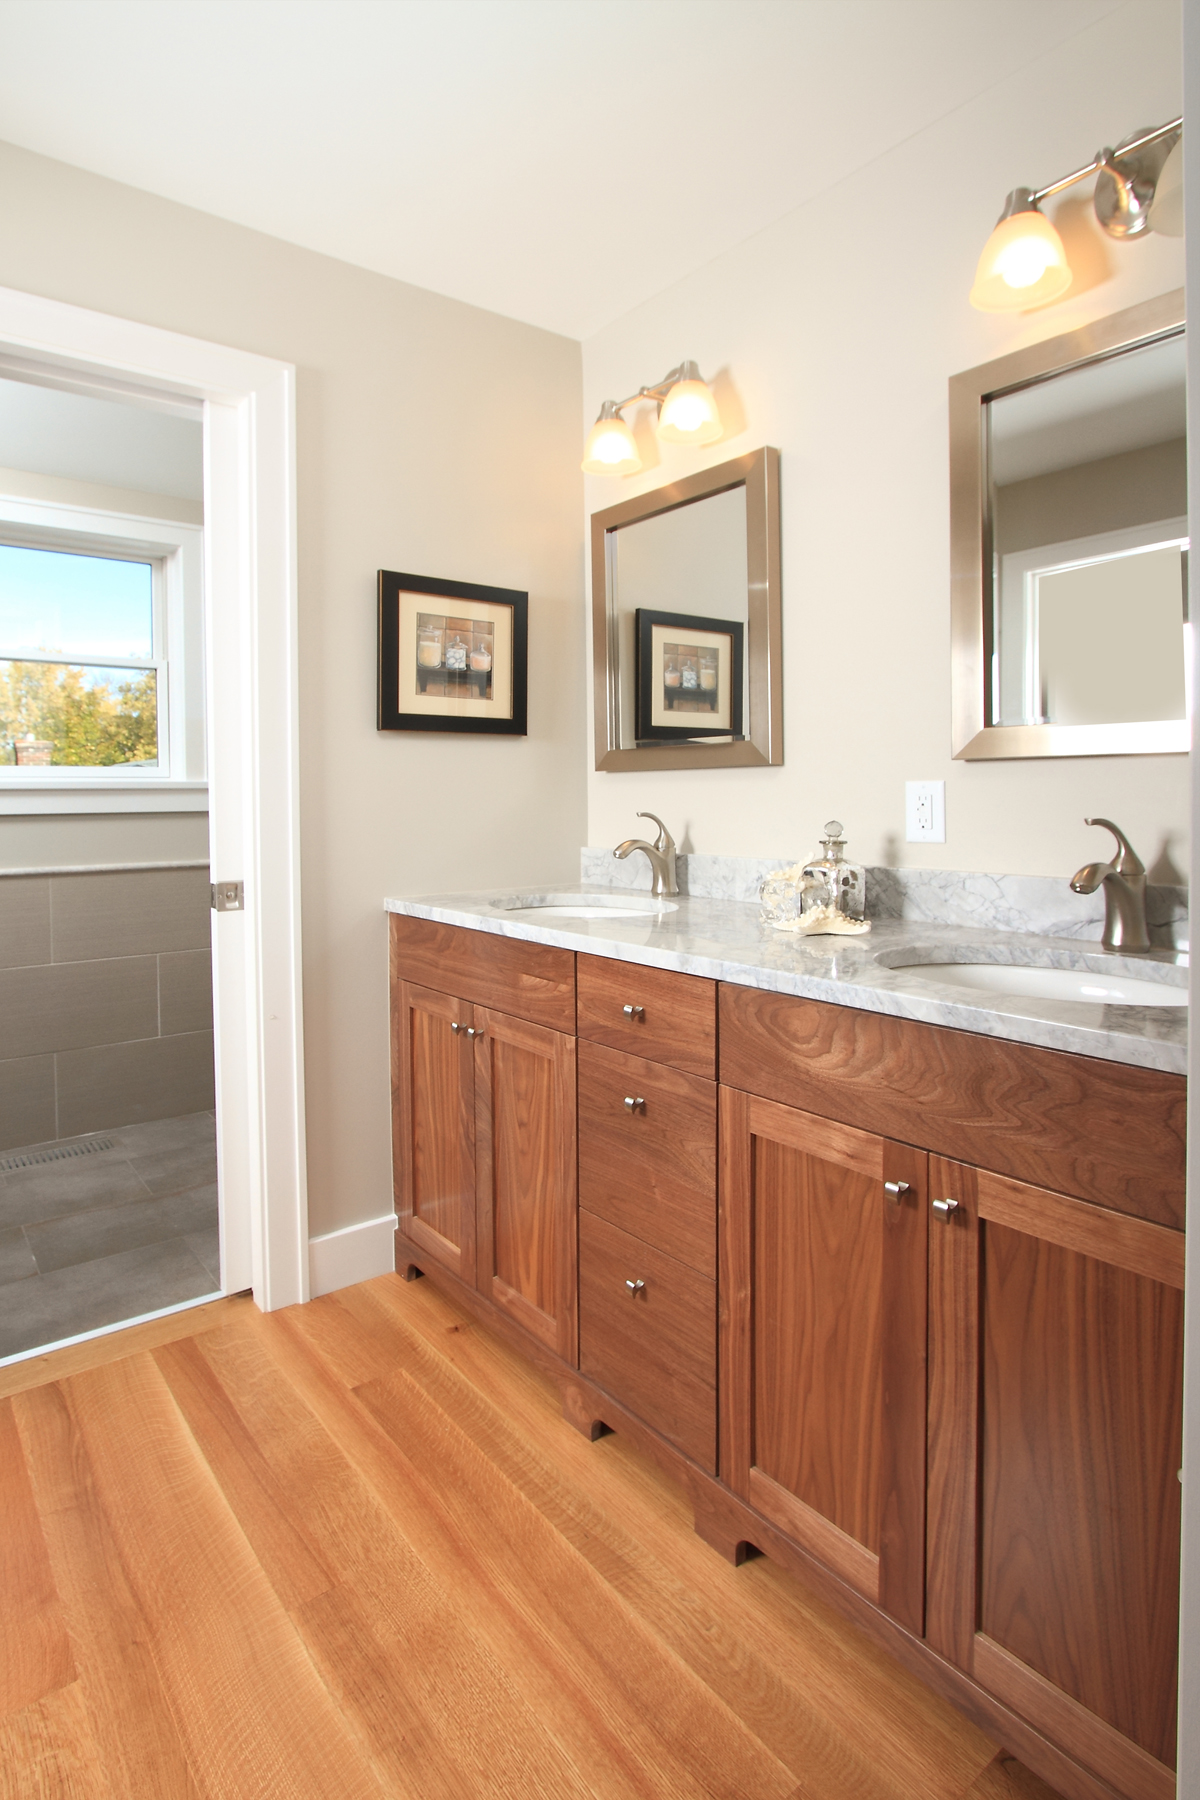 mls_master bathroom1.jpg